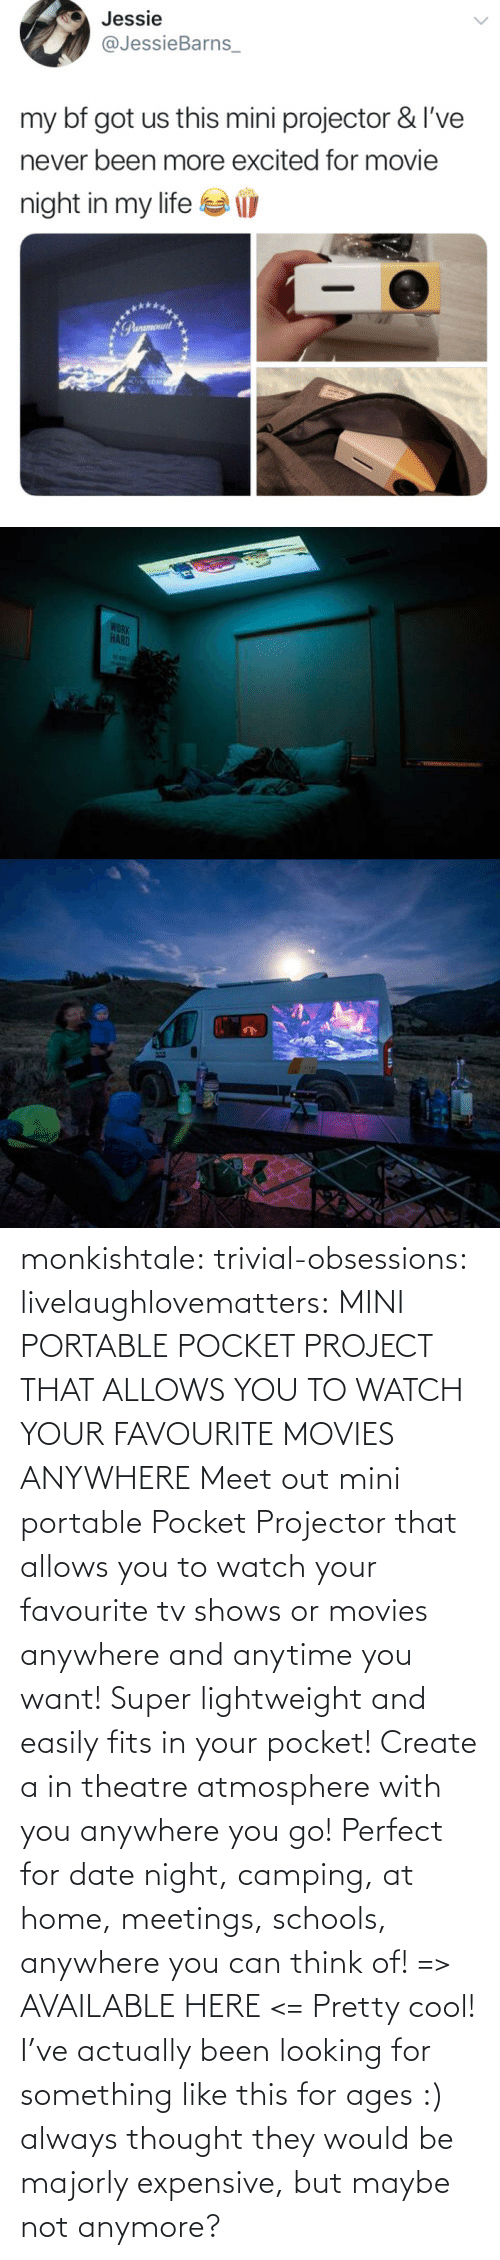 create: monkishtale: trivial-obsessions:   livelaughlovematters:   MINI PORTABLE POCKET PROJECT THAT ALLOWS YOU TO WATCH YOUR FAVOURITE MOVIES ANYWHERE Meet out mini portable Pocket Projector that allows you to watch your favourite tv shows or movies anywhere and anytime you want! Super lightweight and easily fits in your pocket! Create a in theatre atmosphere with you anywhere you go! Perfect for date night, camping, at home, meetings, schools, anywhere you can think of! => AVAILABLE HERE <=    Pretty cool!    I've actually been looking for something like this for ages :) always thought they would be majorly expensive, but maybe not anymore?